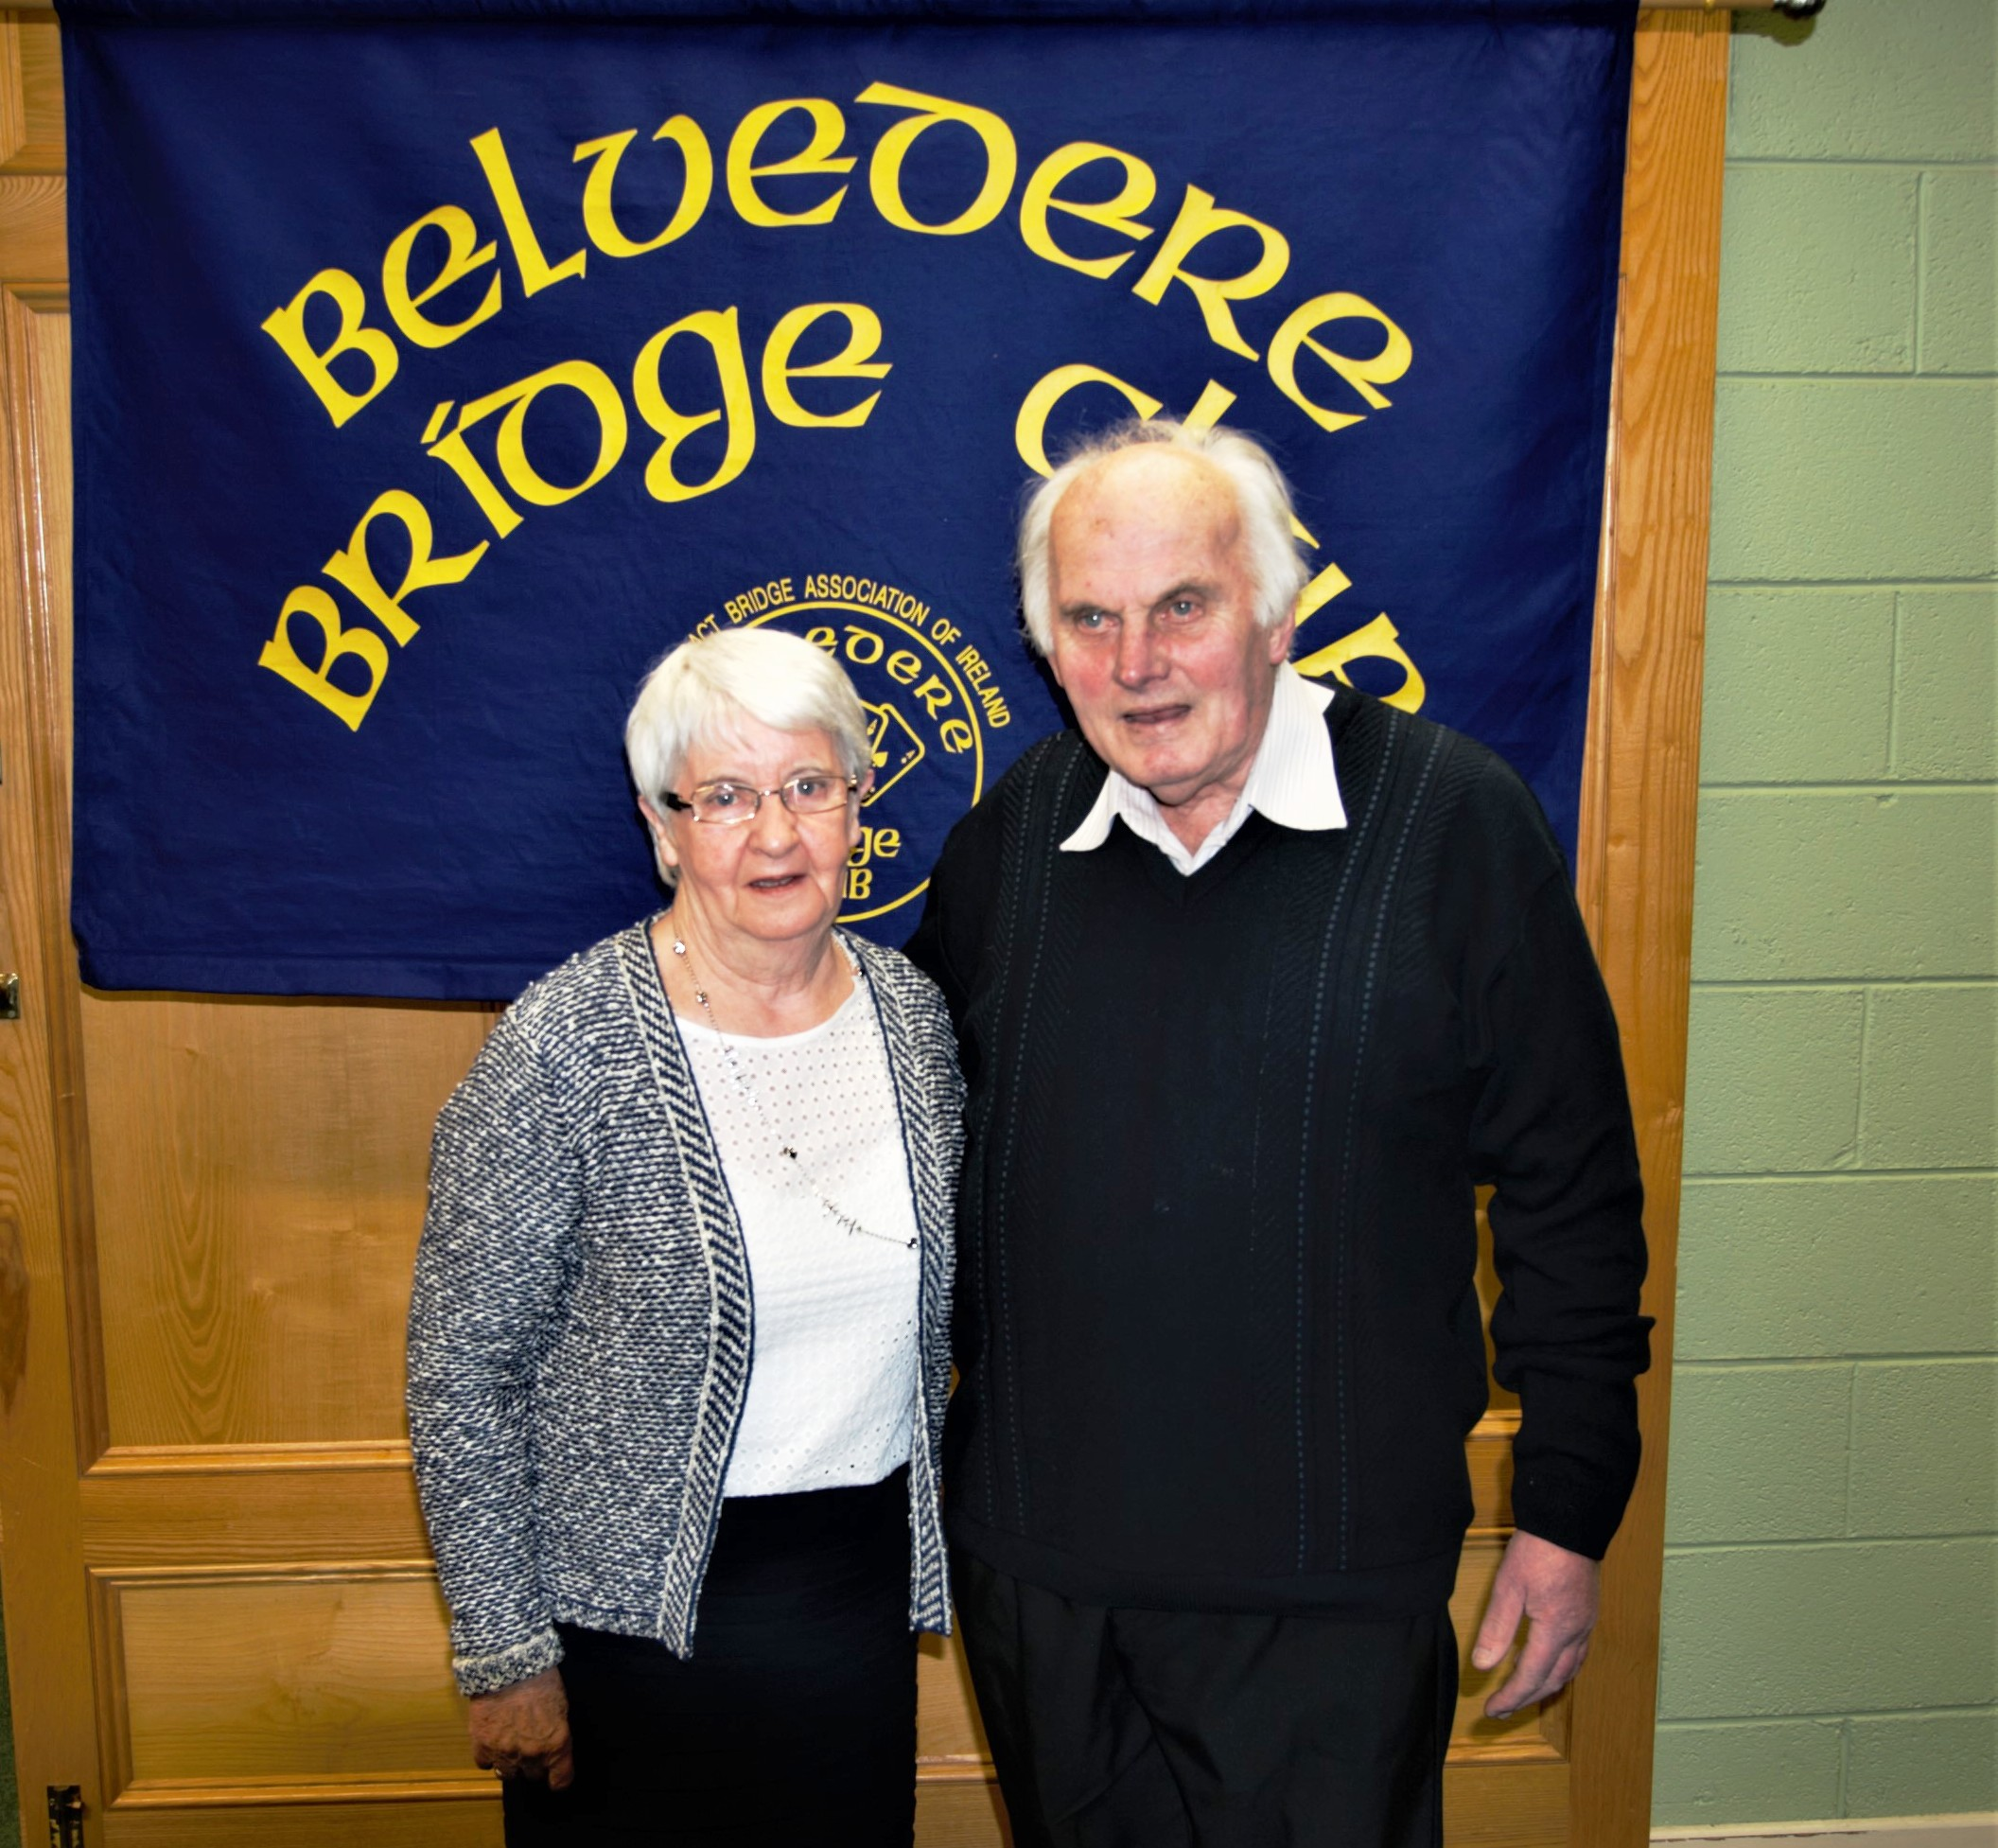 Mary Corroon  winner of the Individual Competition in the Belvedere Bridge Club  with Pat Seery President.